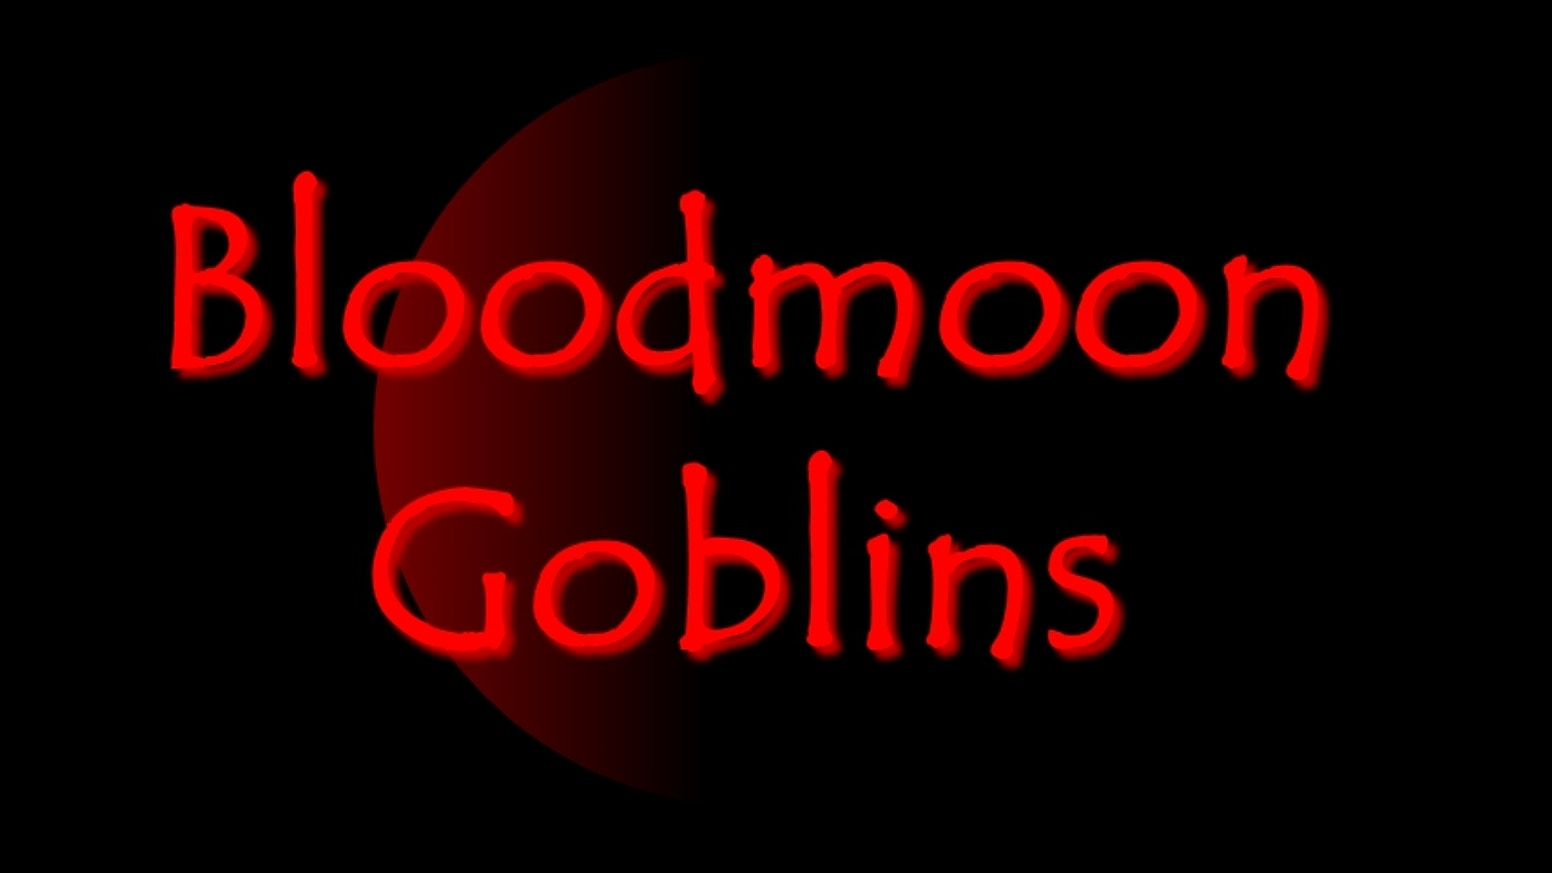 Bloodmoon Goblins by John Grana » BMG Now Available at paizo